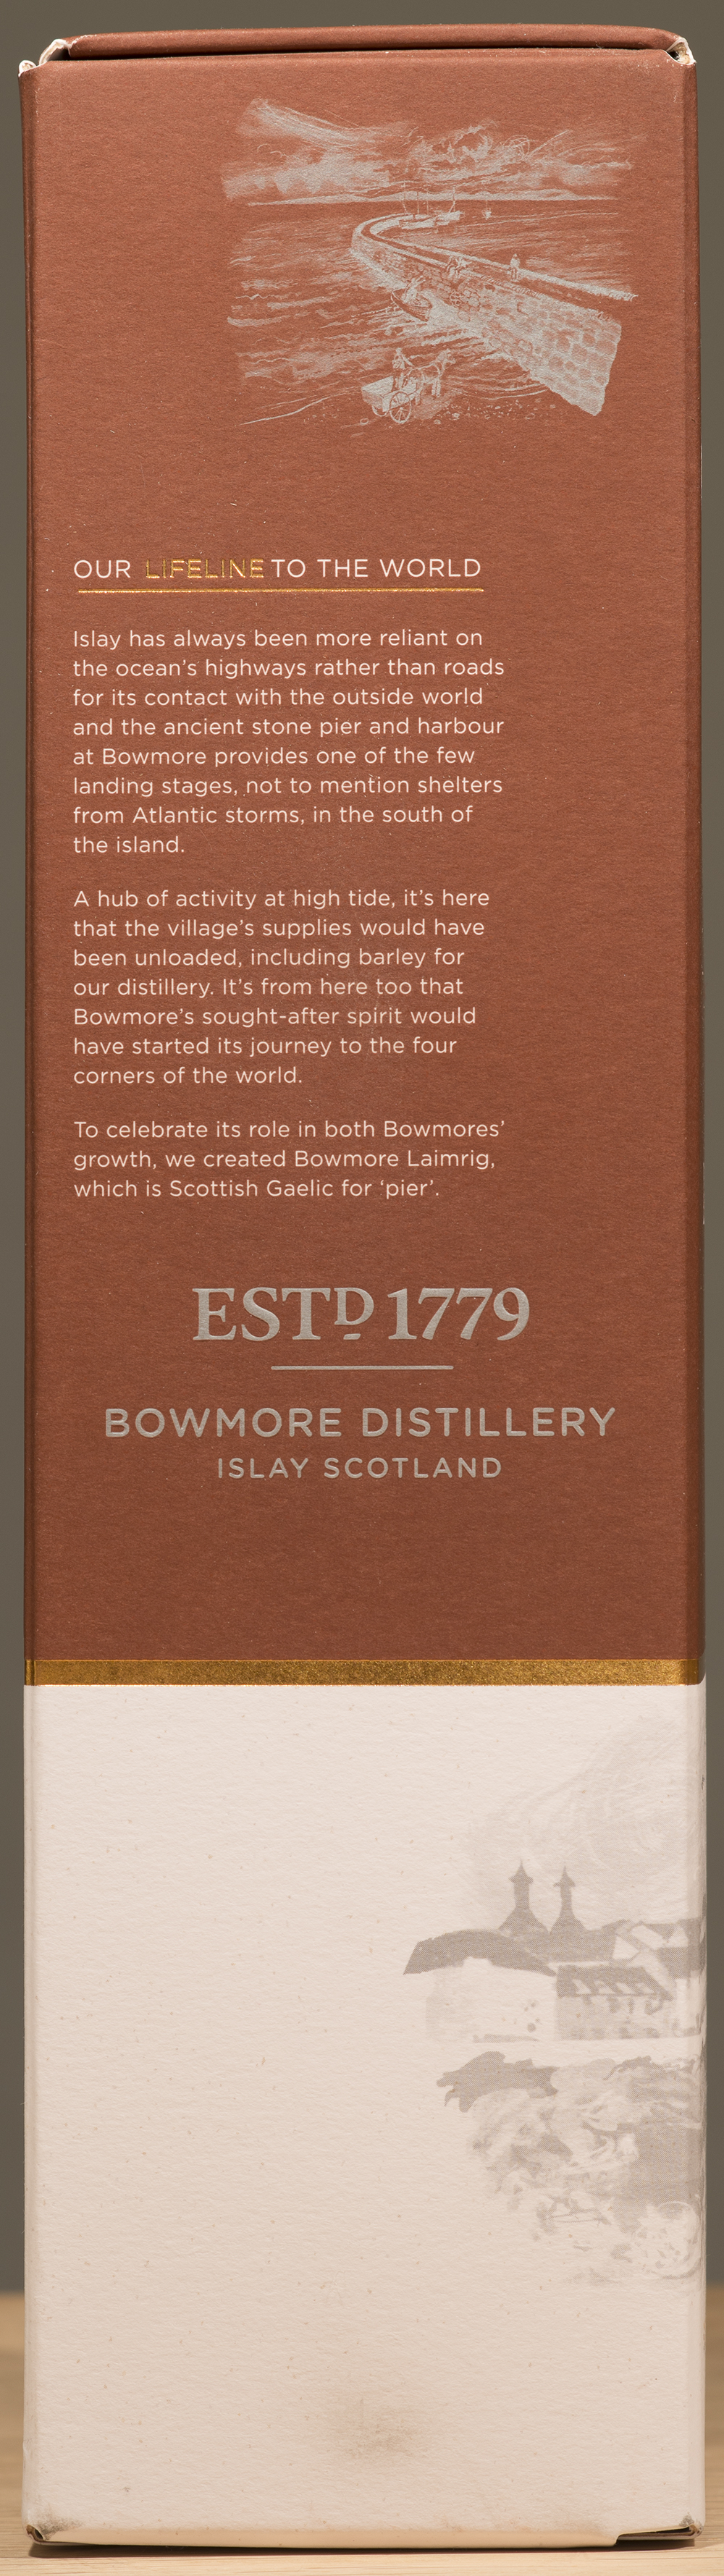 Billede: DSC_0273 Bowmore Laimrig 15 - box side.jpg